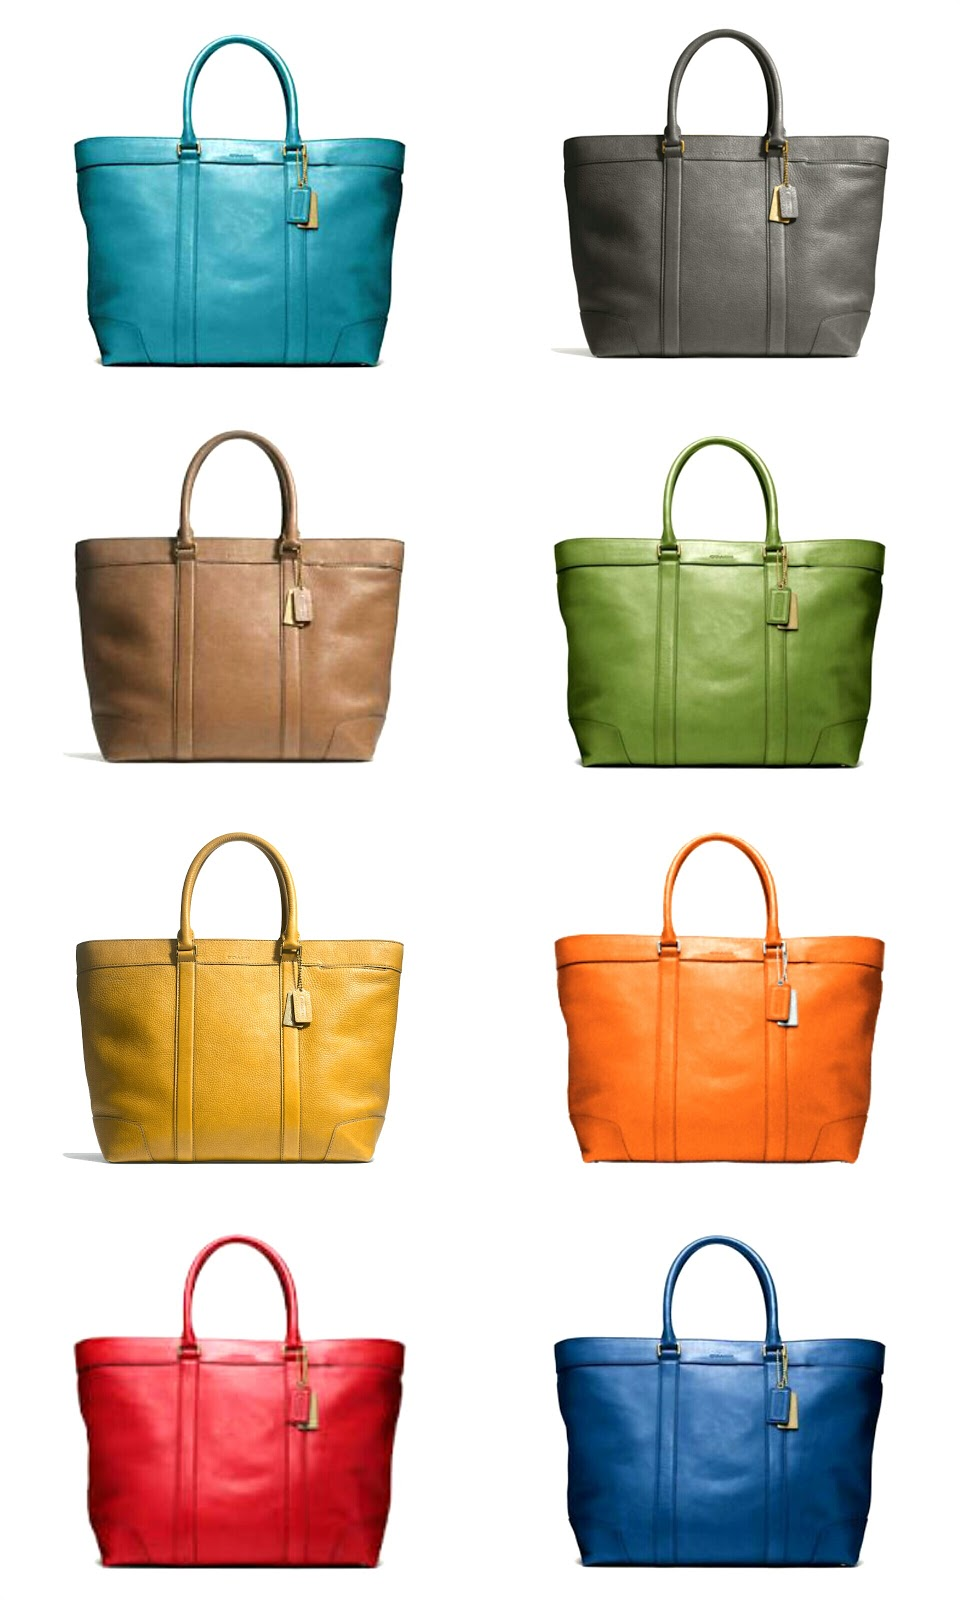 Coach, Bleecker, Tote, Bleecker Weekend Tote, 70487, Chili, Bonfire, Sand, Granite, Green, Ocean, Sky Blue, Mustard, Pantone, Color, Trends, Fashion, Sacs Magnifiques